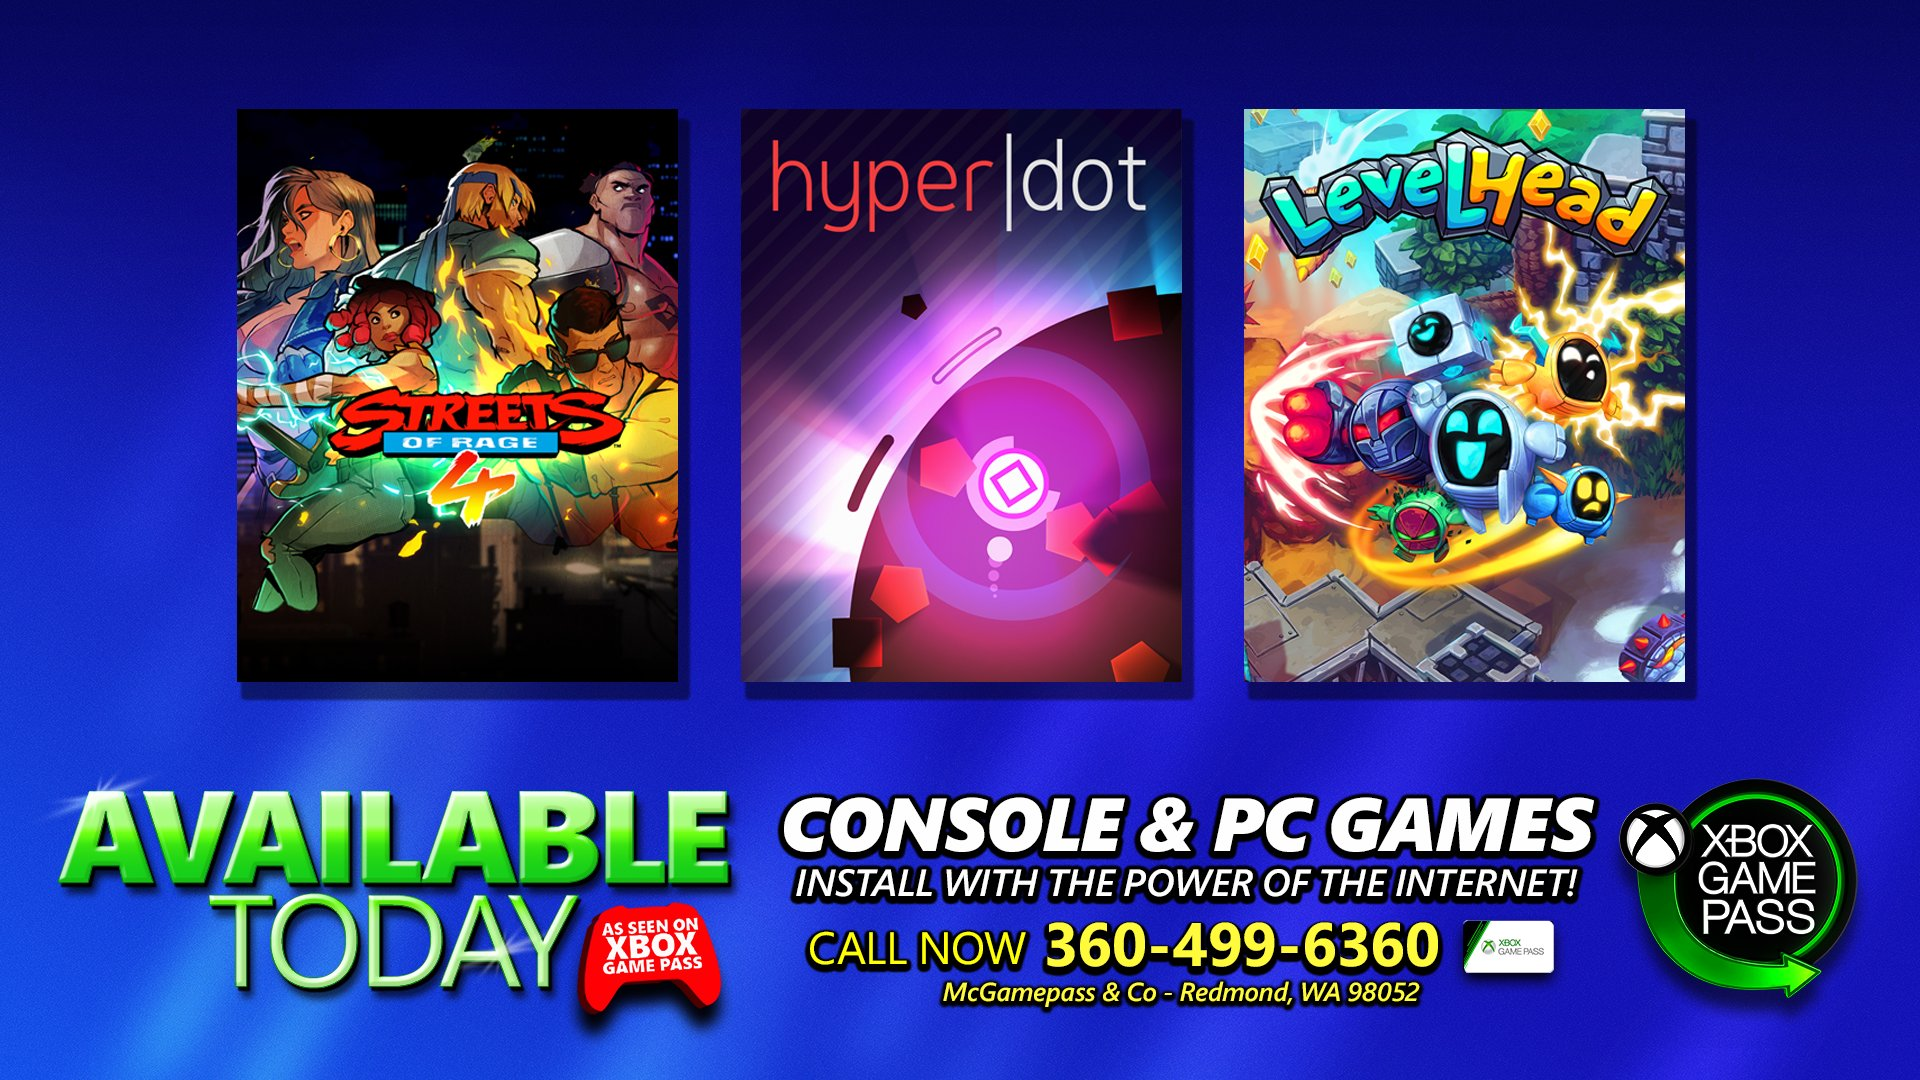 The cover art for Streets of Rage 4, HyperDot, and Levelhead are on display in front of a blue background. It is available on console and PC Image reads: AVAILABLE TODAY. CONSOLE & PC. AS SEEN ON XBOX GAME PASS. CONSOLE GAMES. INSTALL WITH THE POWER OF THE INTERNET! CALL NOW 360-499-6360. MCGAMEPASS & CO - REDMOND, WA 98502